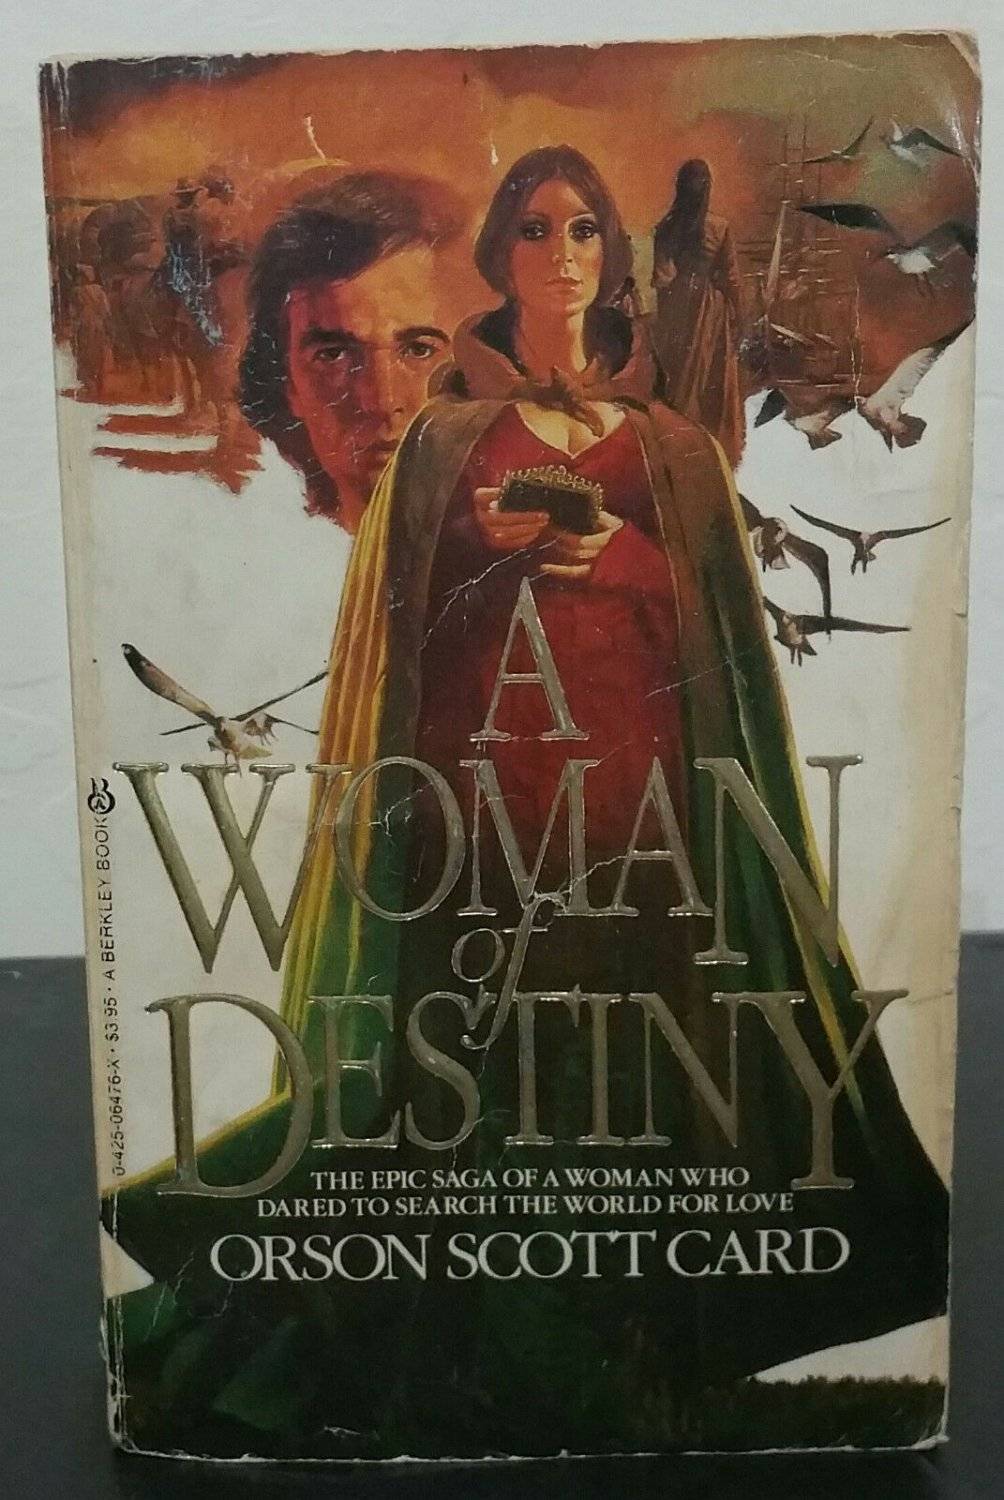 A Woman of Destiny aka Saints by Orson Scott Card - Signed 1st Pb. Edn.